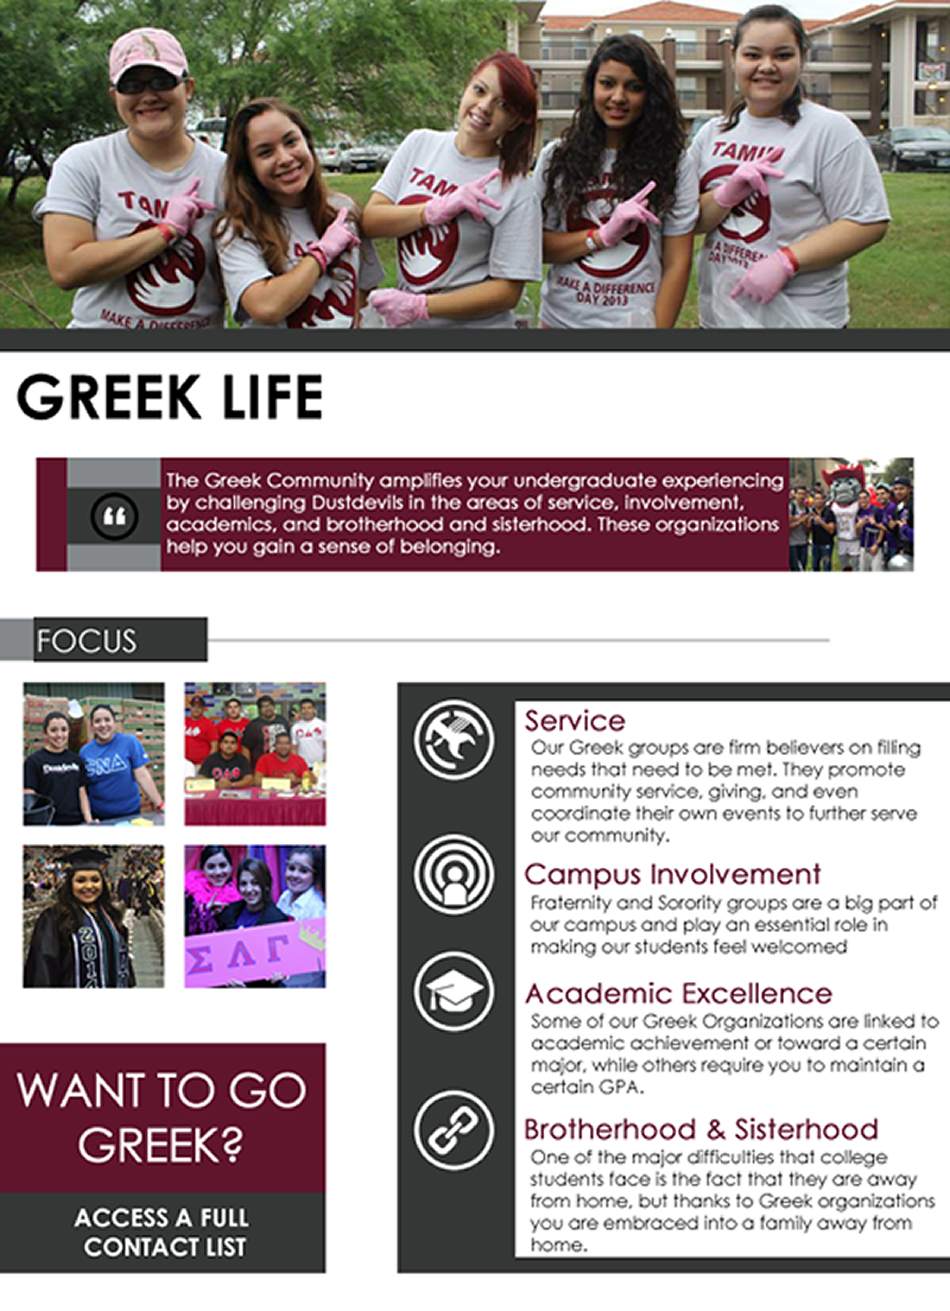 Greek Life Information and Links